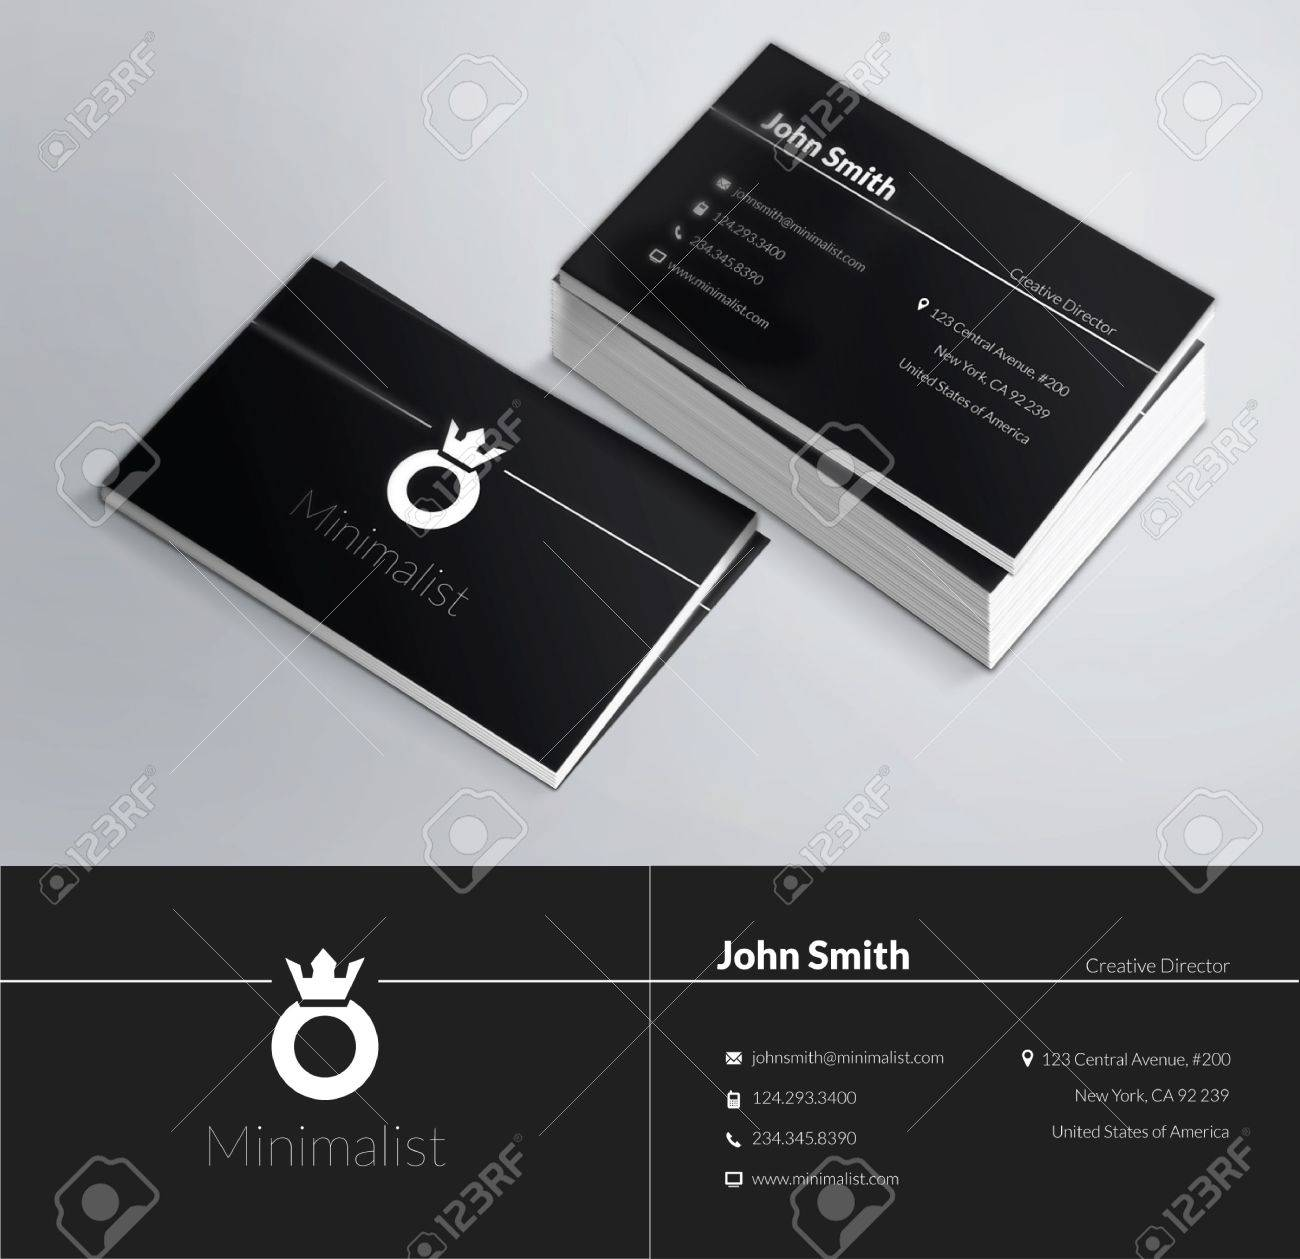 Styles of business cards gallery free business cards different types of business cards image collections free business card stock types choice image card design magicingreecefo Choice Image